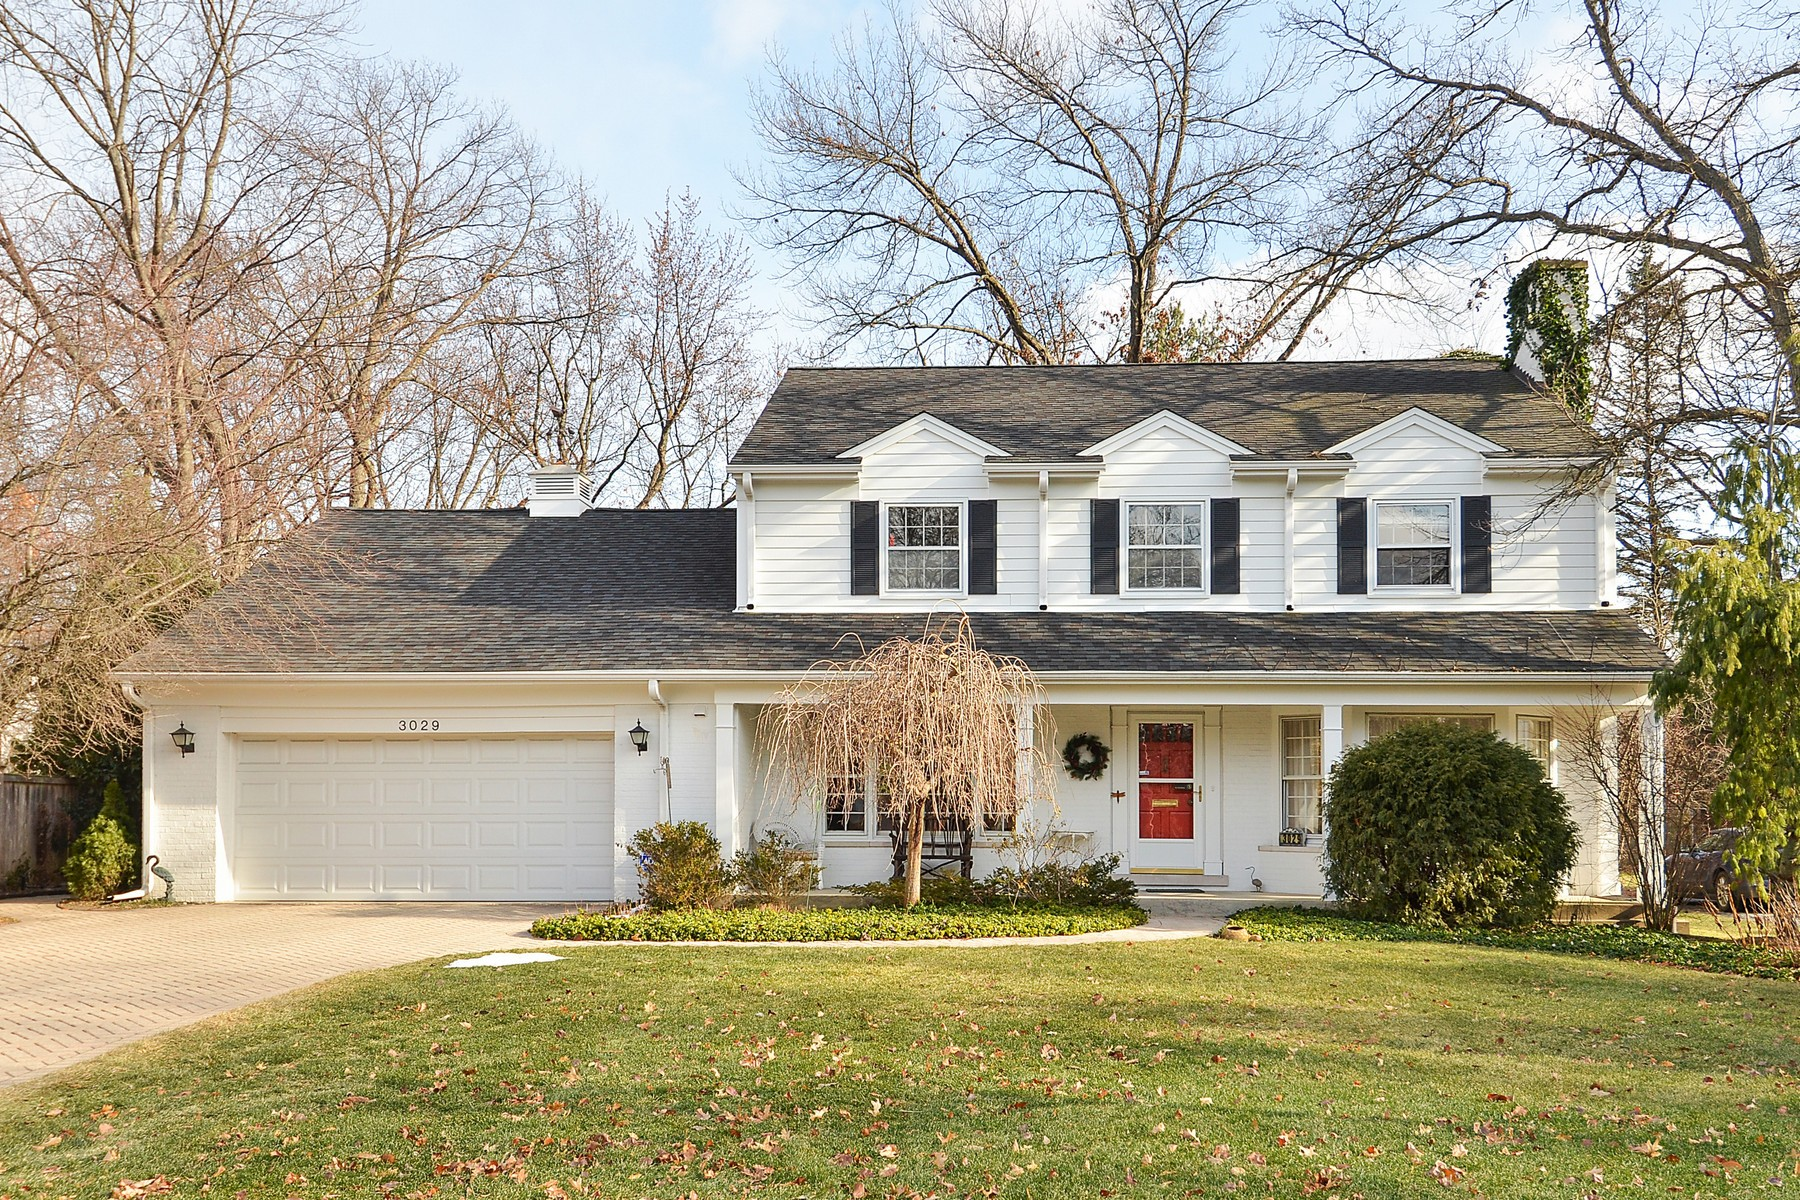 Maison unifamiliale pour l Vente à Beautiful Spacious Home 3029 Iroquois Road Wilmette, Illinois, 60091 États-Unis